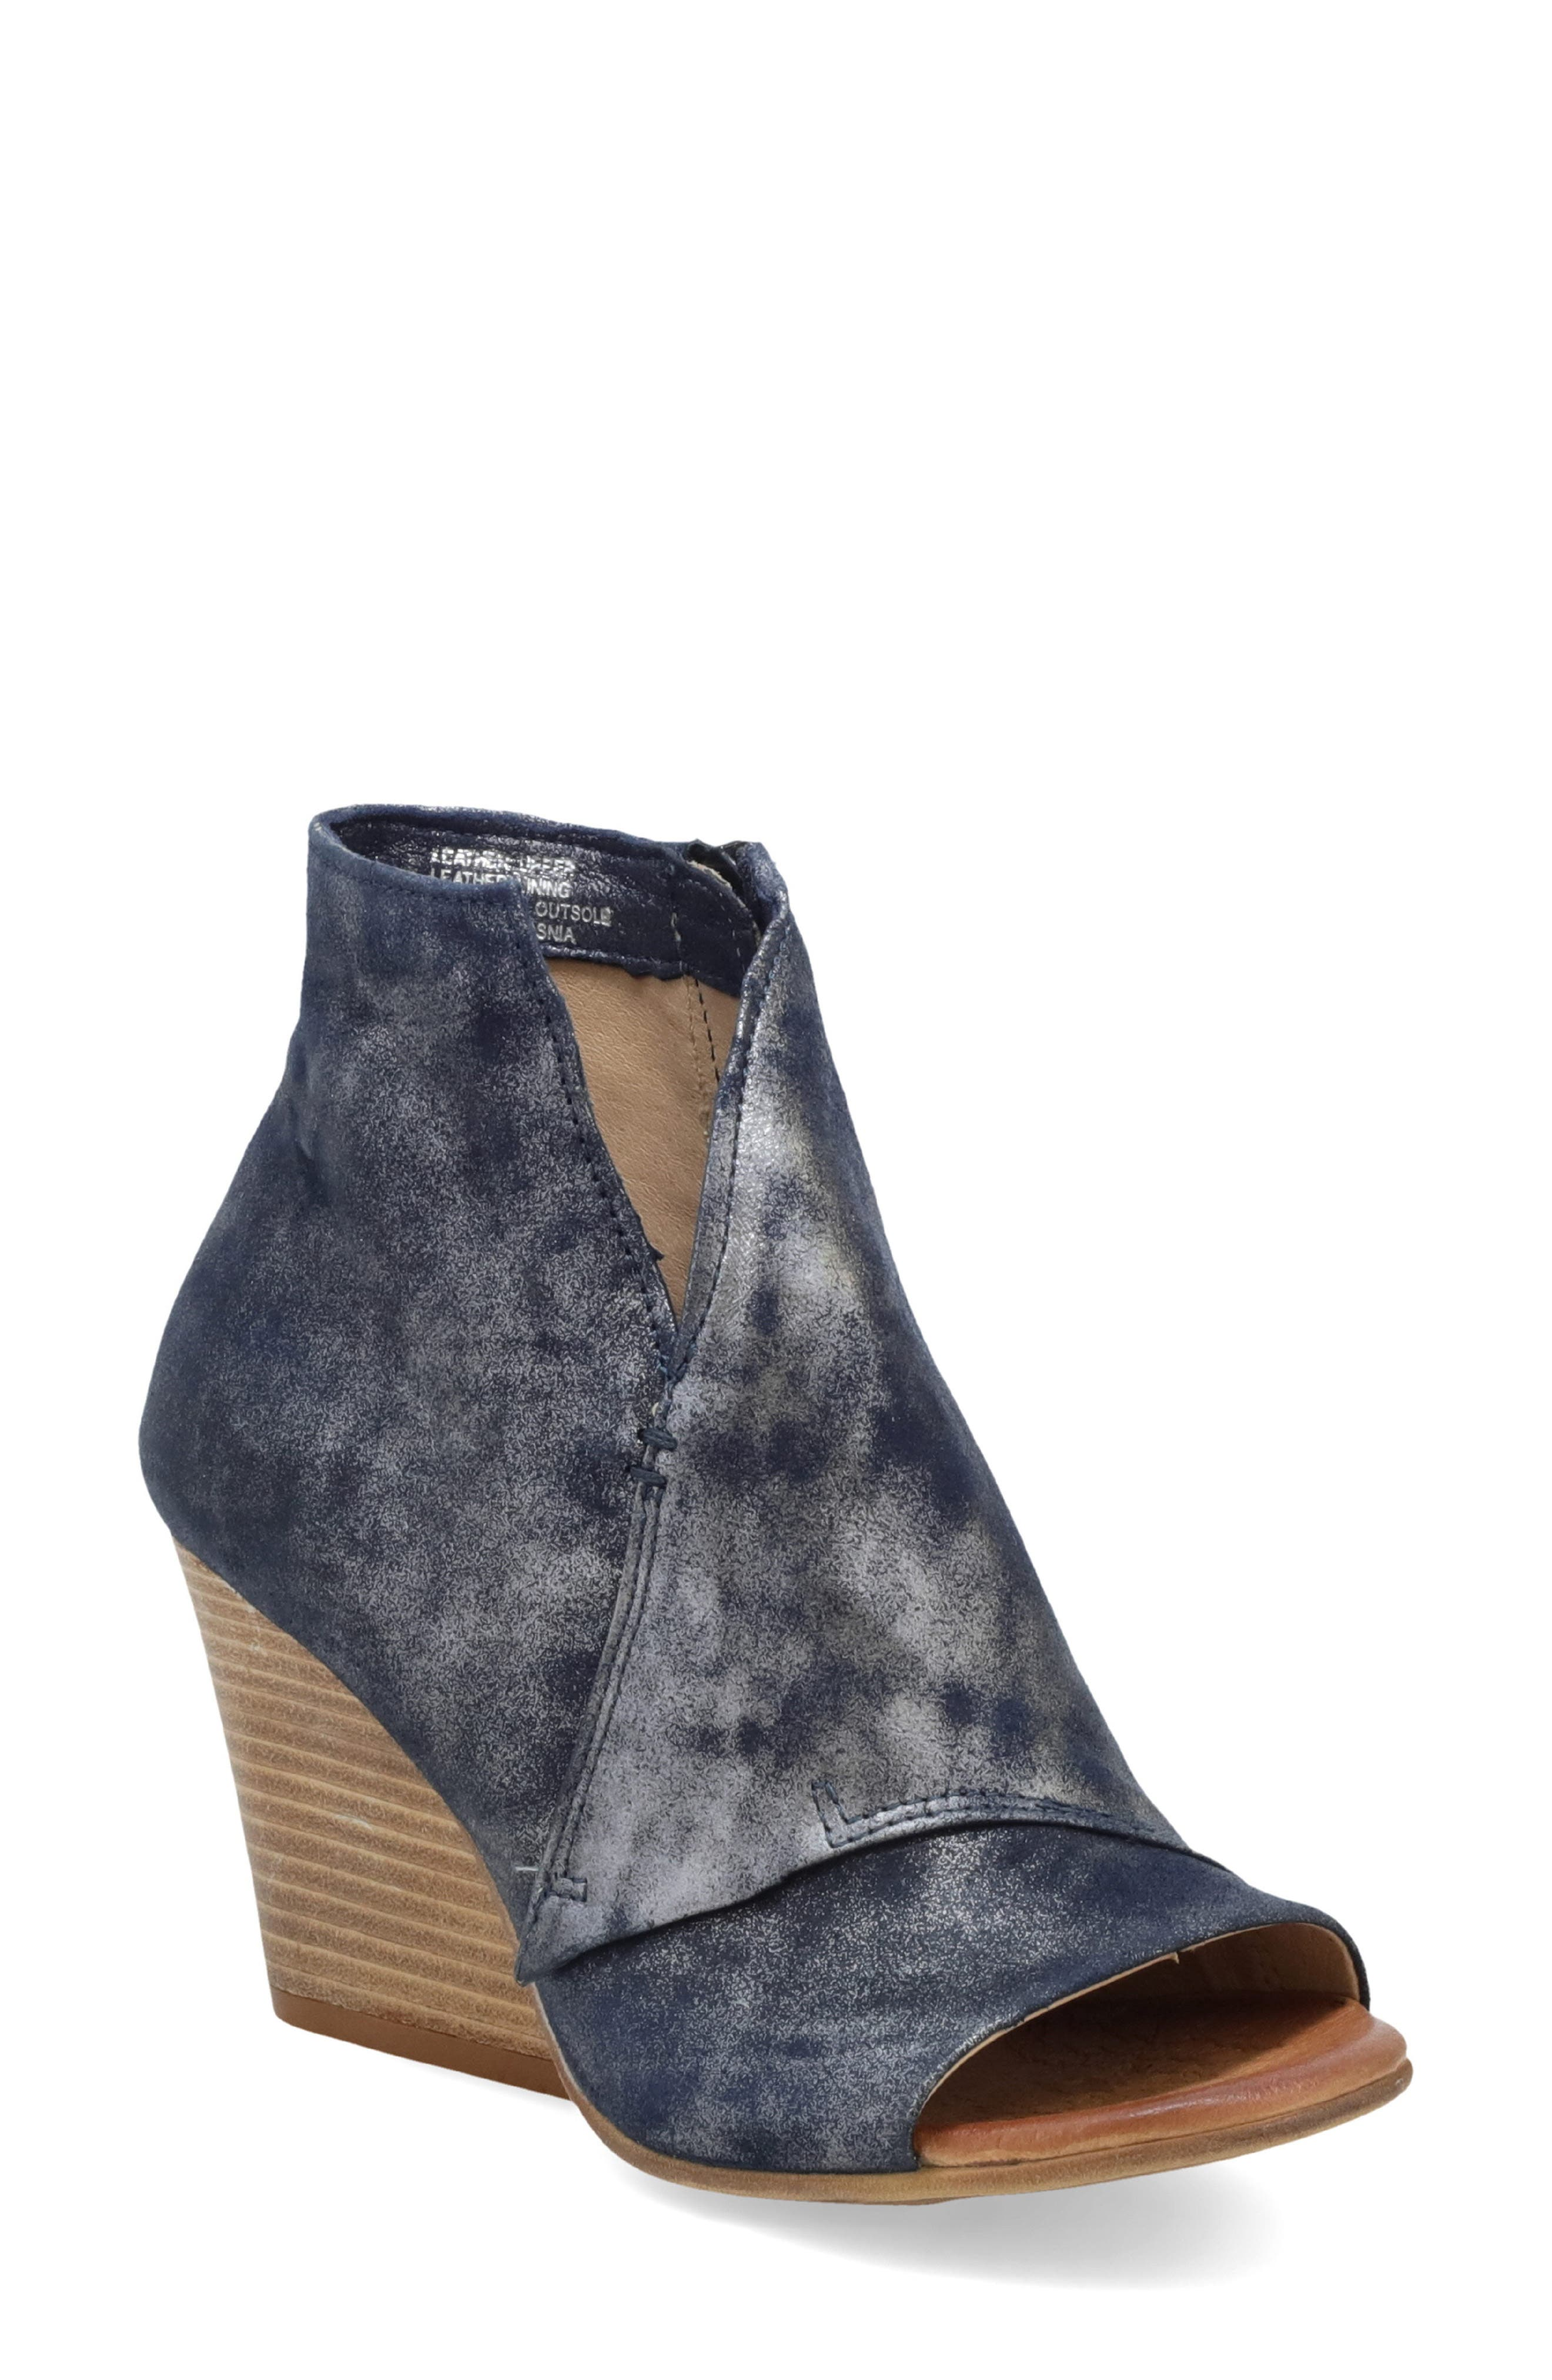 An architectural stacked demi wedge lifts a wrapped-shaft bootie made with a cushioned footbed. Style Name: Miz Mooz Kimball Open Toe Bootie (Women). Style Number: 5762940. Available in stores.